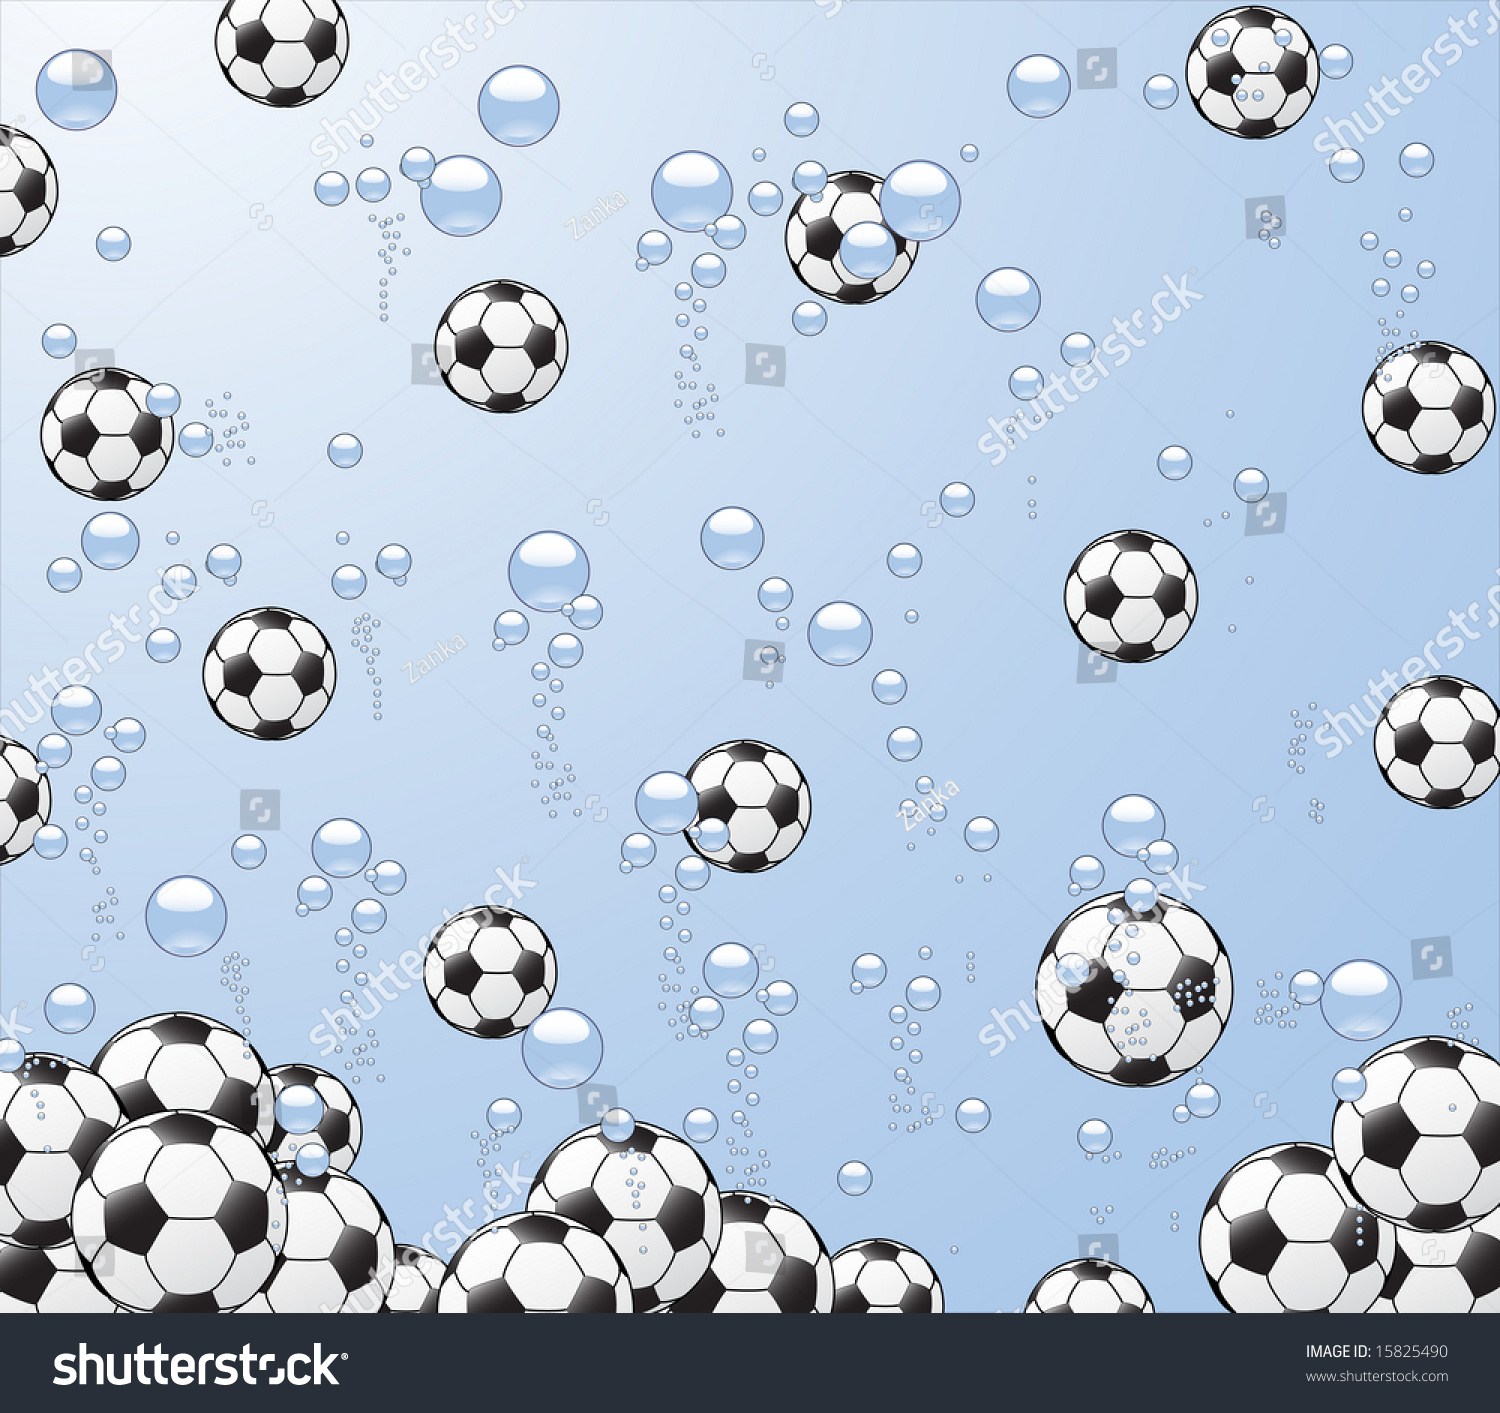 Stock Vector Illustration Of Background With Footballs Under Water